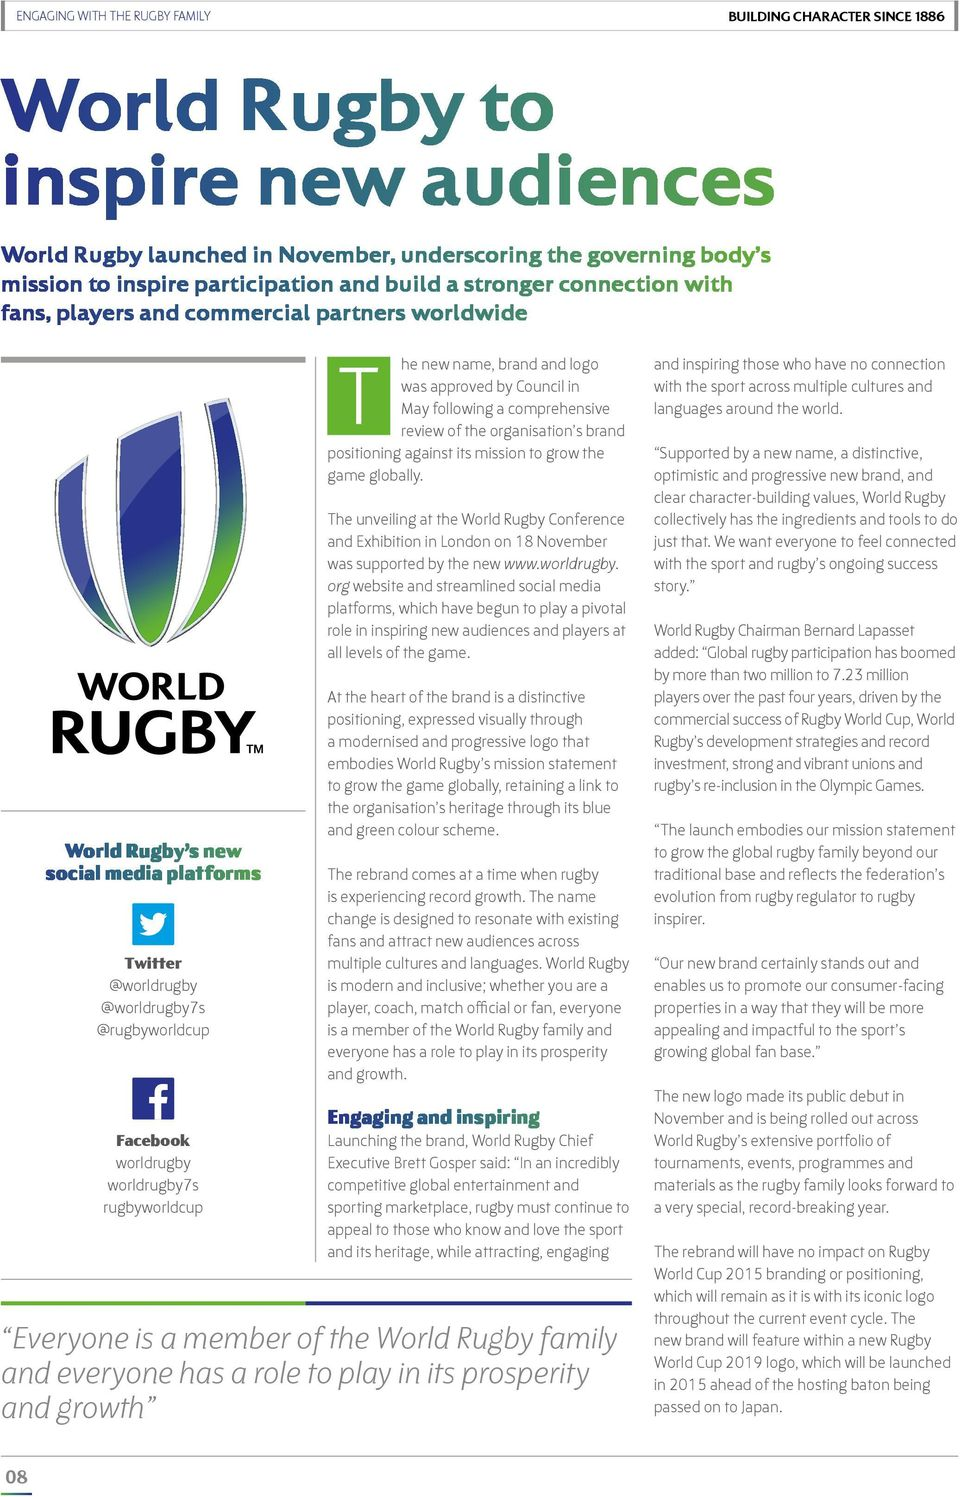 worldrugby7s rugbyworldcup he new name, brand and logo was approved by Council in May following a comprehensive review of the organisation s brand positioning against its mission to grow the game